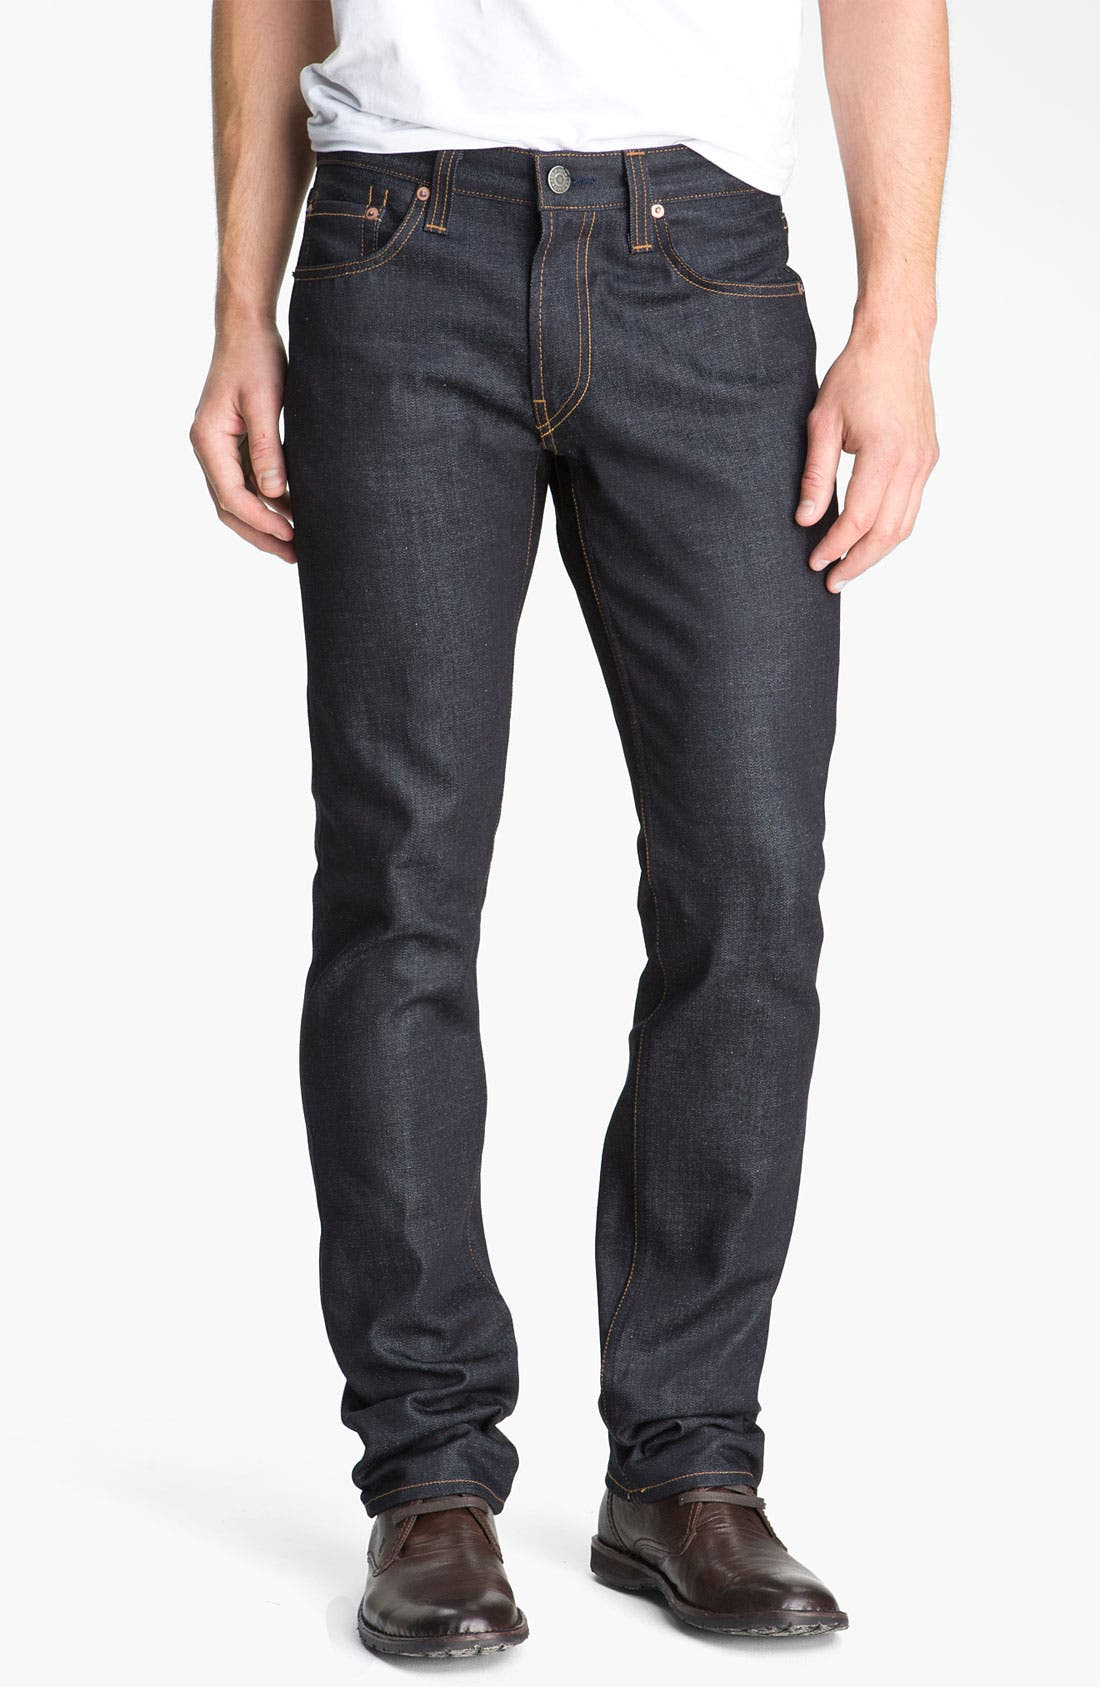 Find the best Signature Five-Pocket Jeans with Stretch, Slim Straight at neo-craft.gq Our high quality Men's Pants and Jeans are thoughtfully designed and built to last season after season.